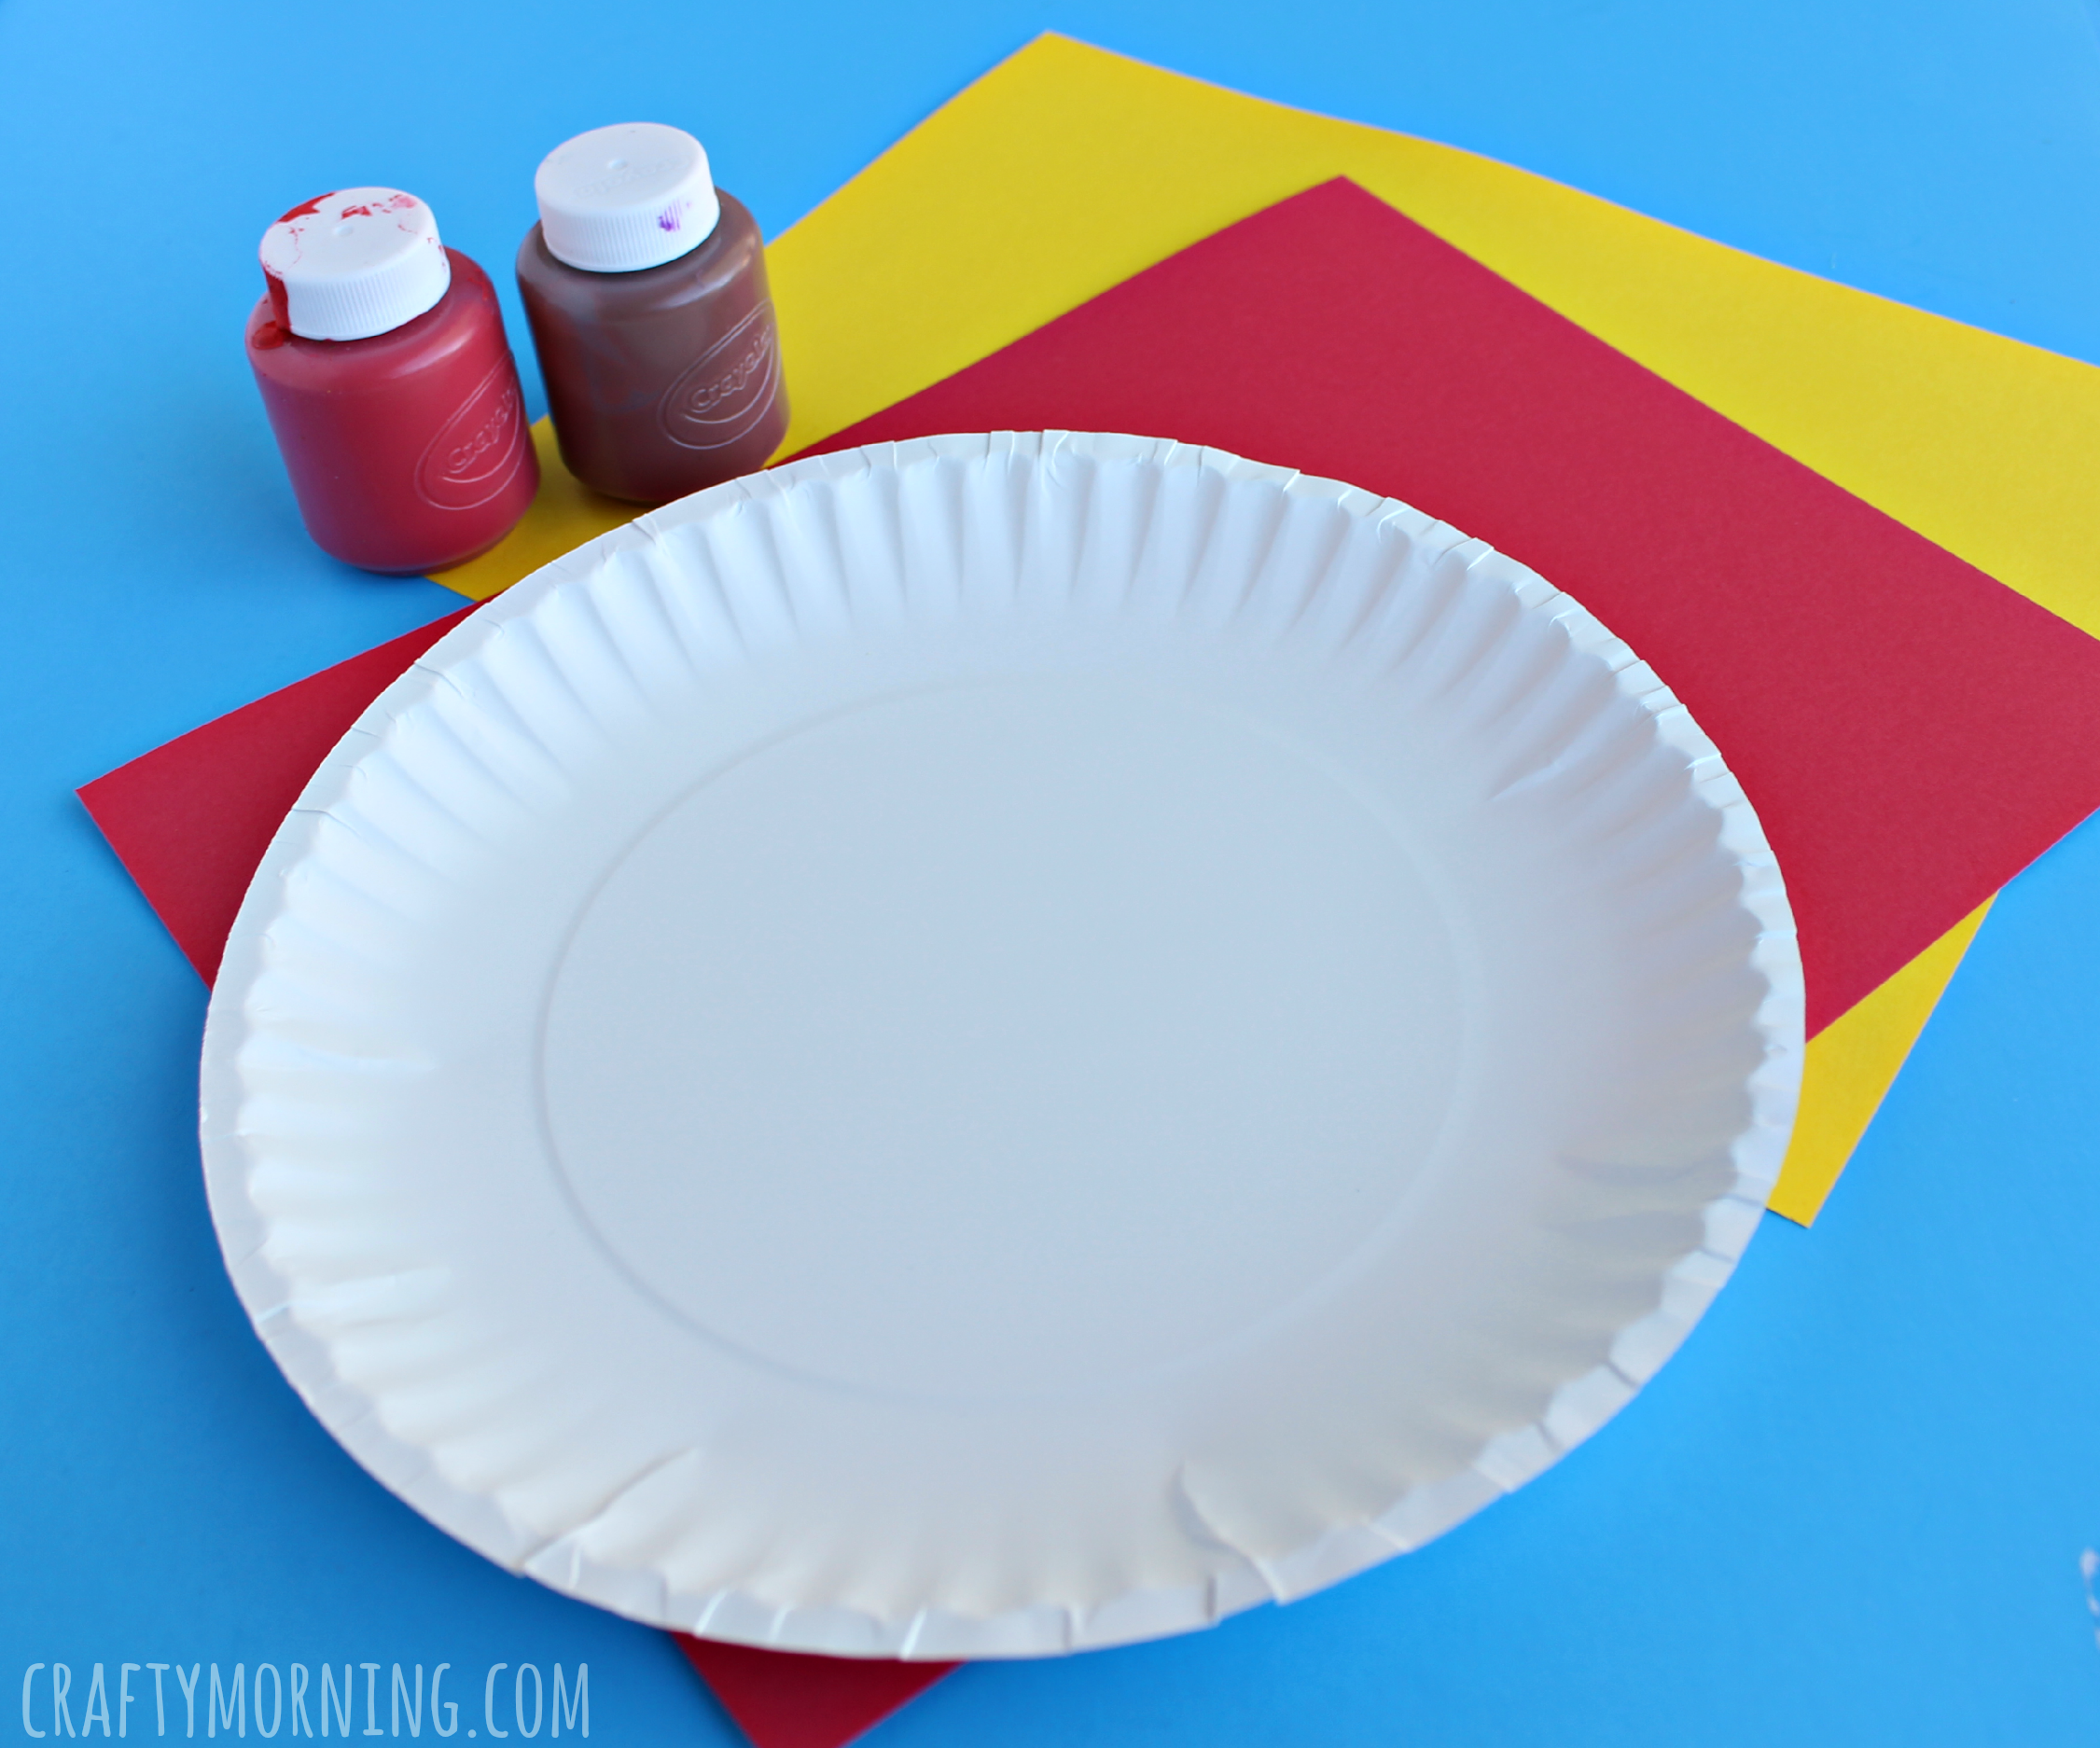 plate paper Find the perfect paper plate stock photos and editorial news pictures from getty  images download premium images you can't get anywhere else.